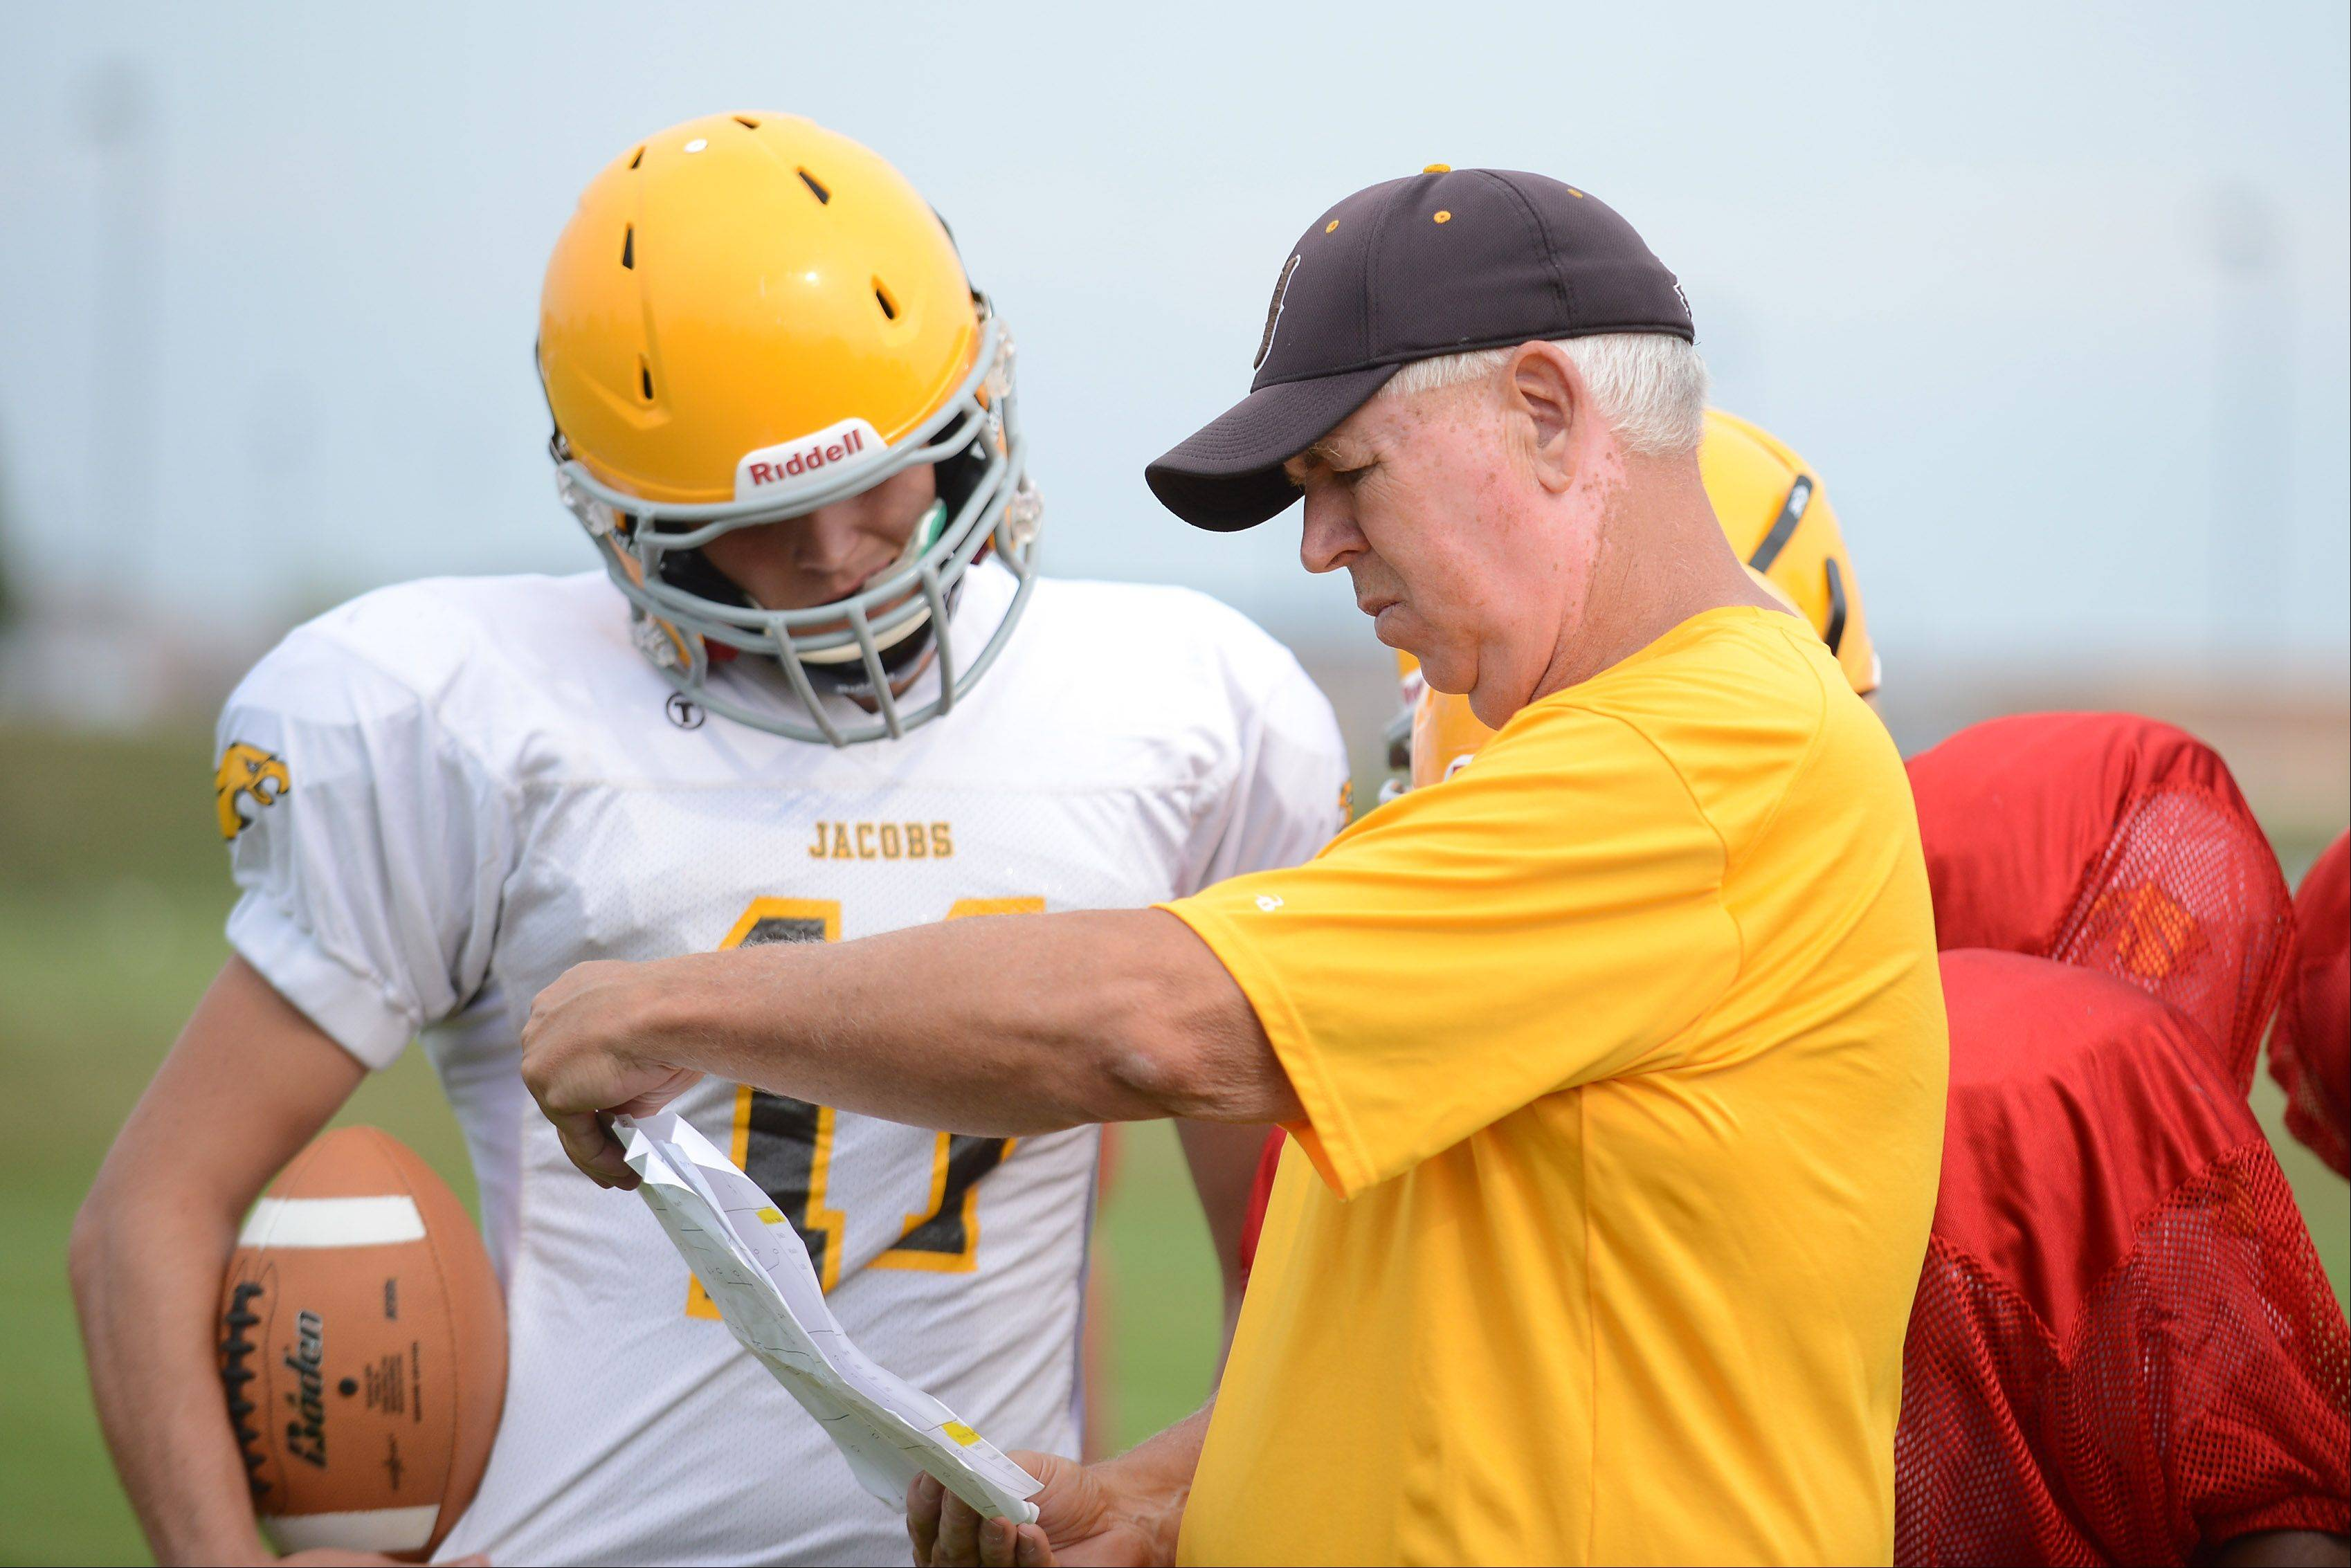 Jacobs senior quarterback Bret Mooney and Golden Eagles coach Bill Mitz go over a play during a preseason practice. Mooney enters Friday�s game against Woodstock just shy of 3,000 yards passing in his high school career.